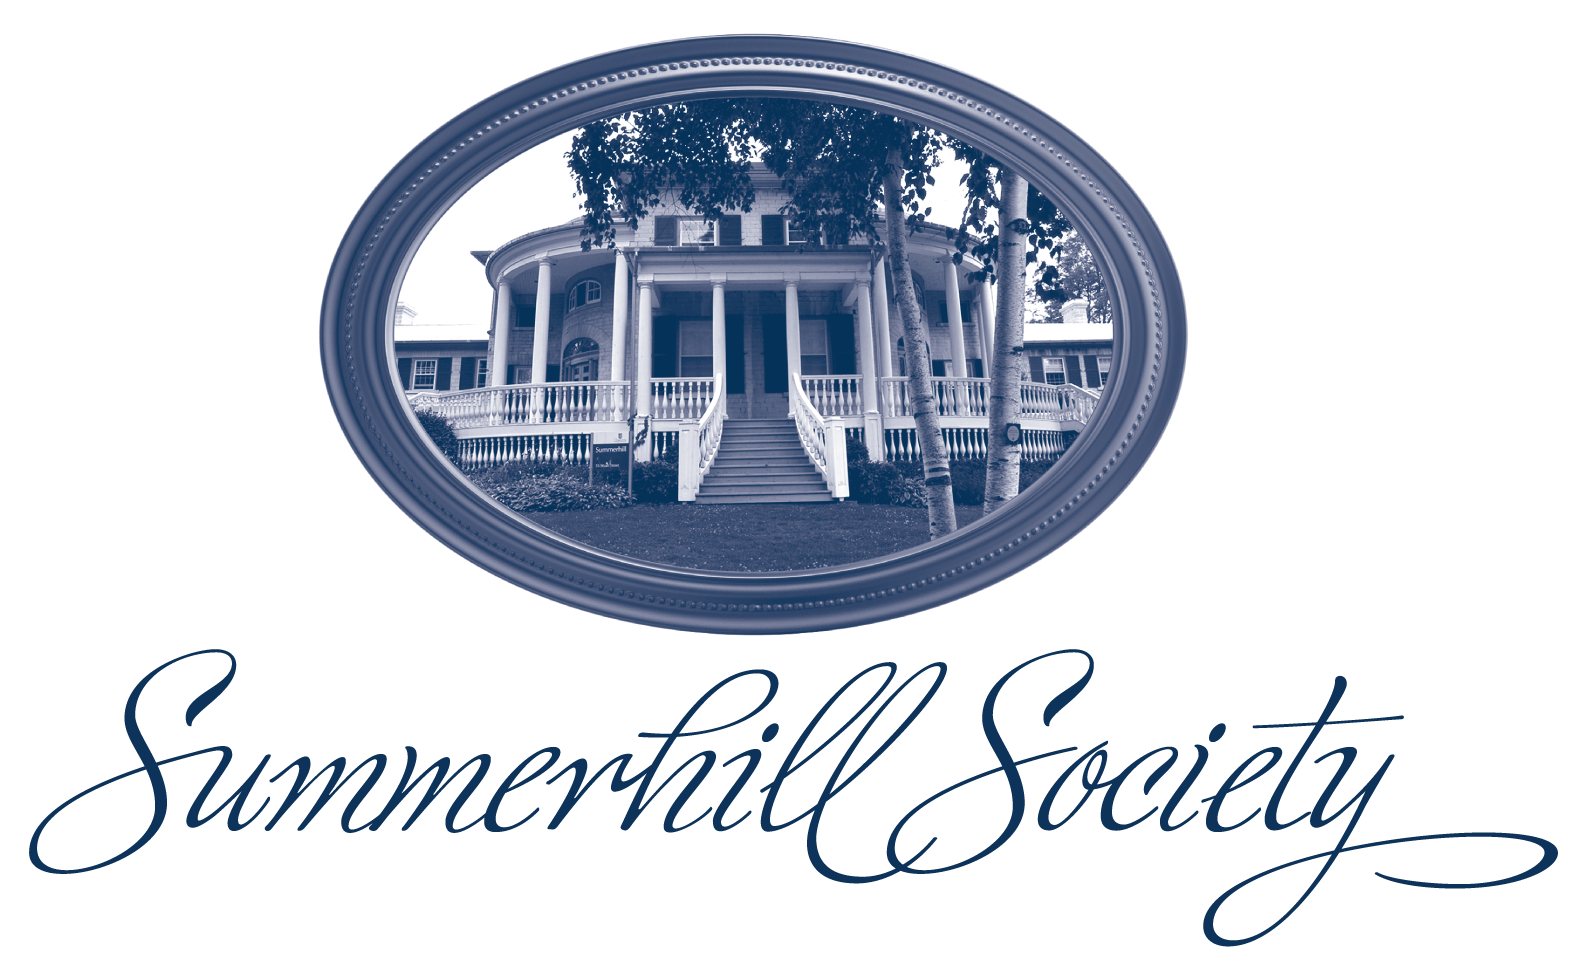 Summerhill Society